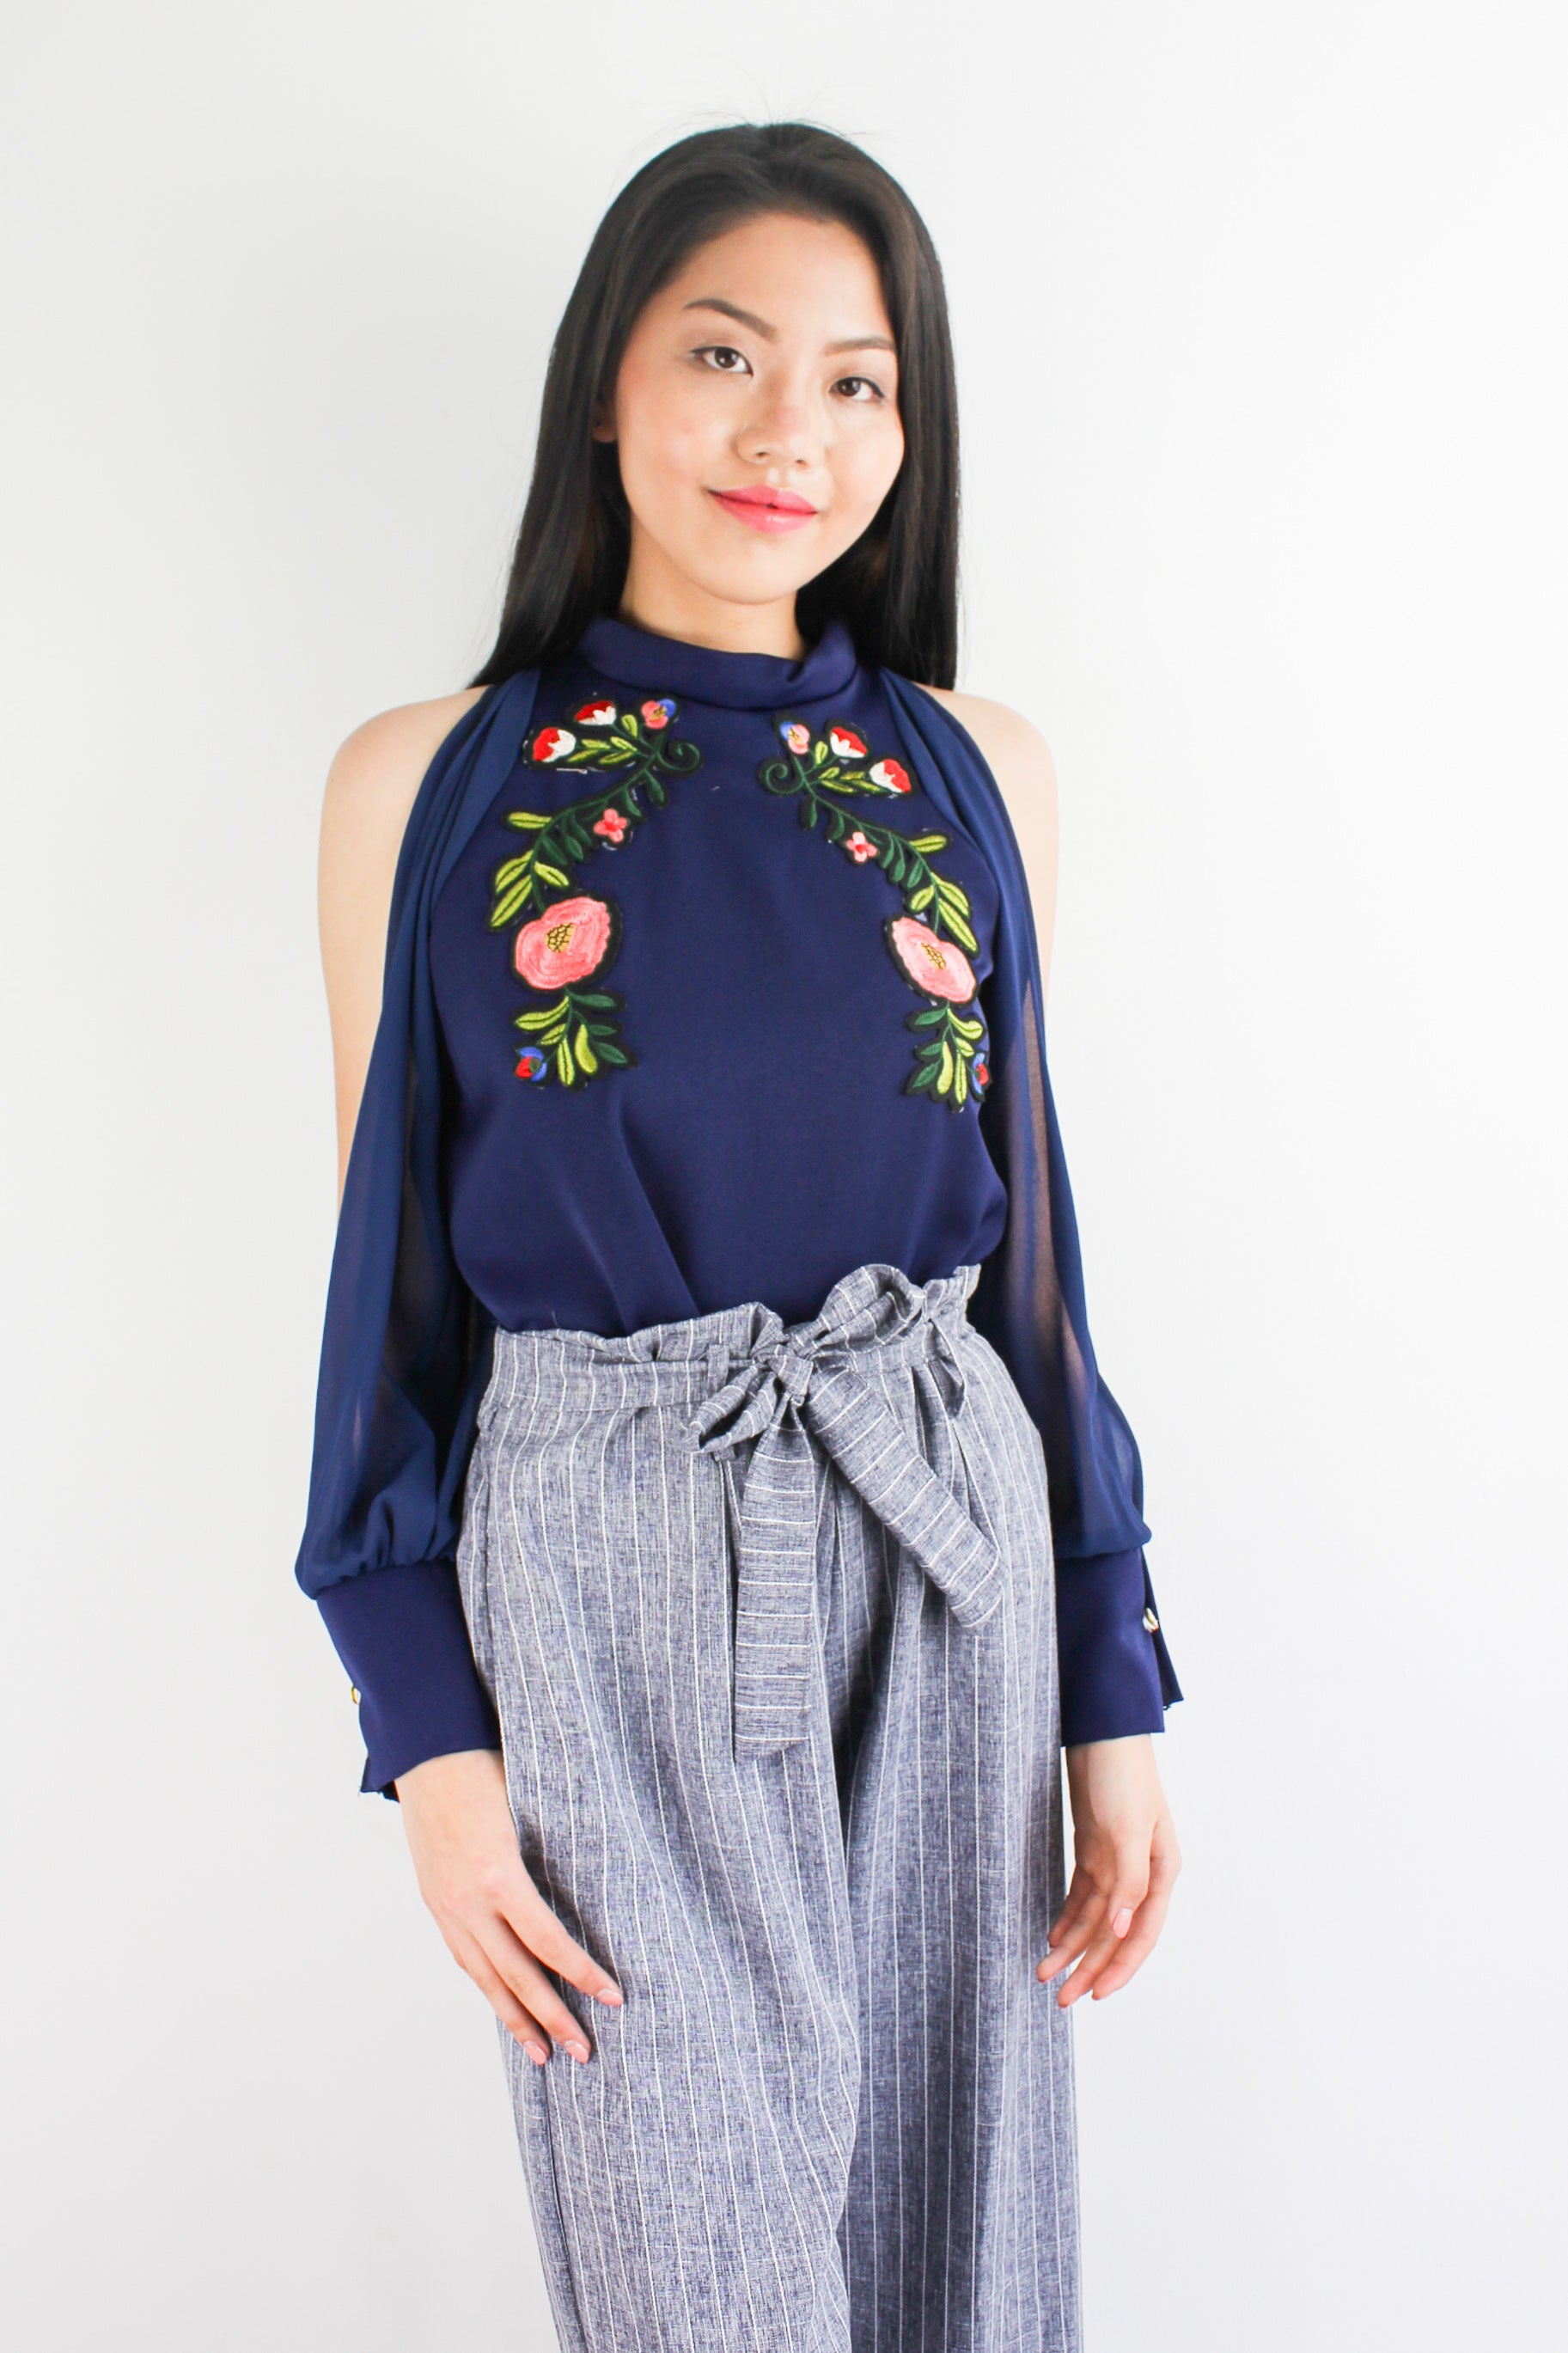 I've Got the Flower Embroidered Top in Navy Blue